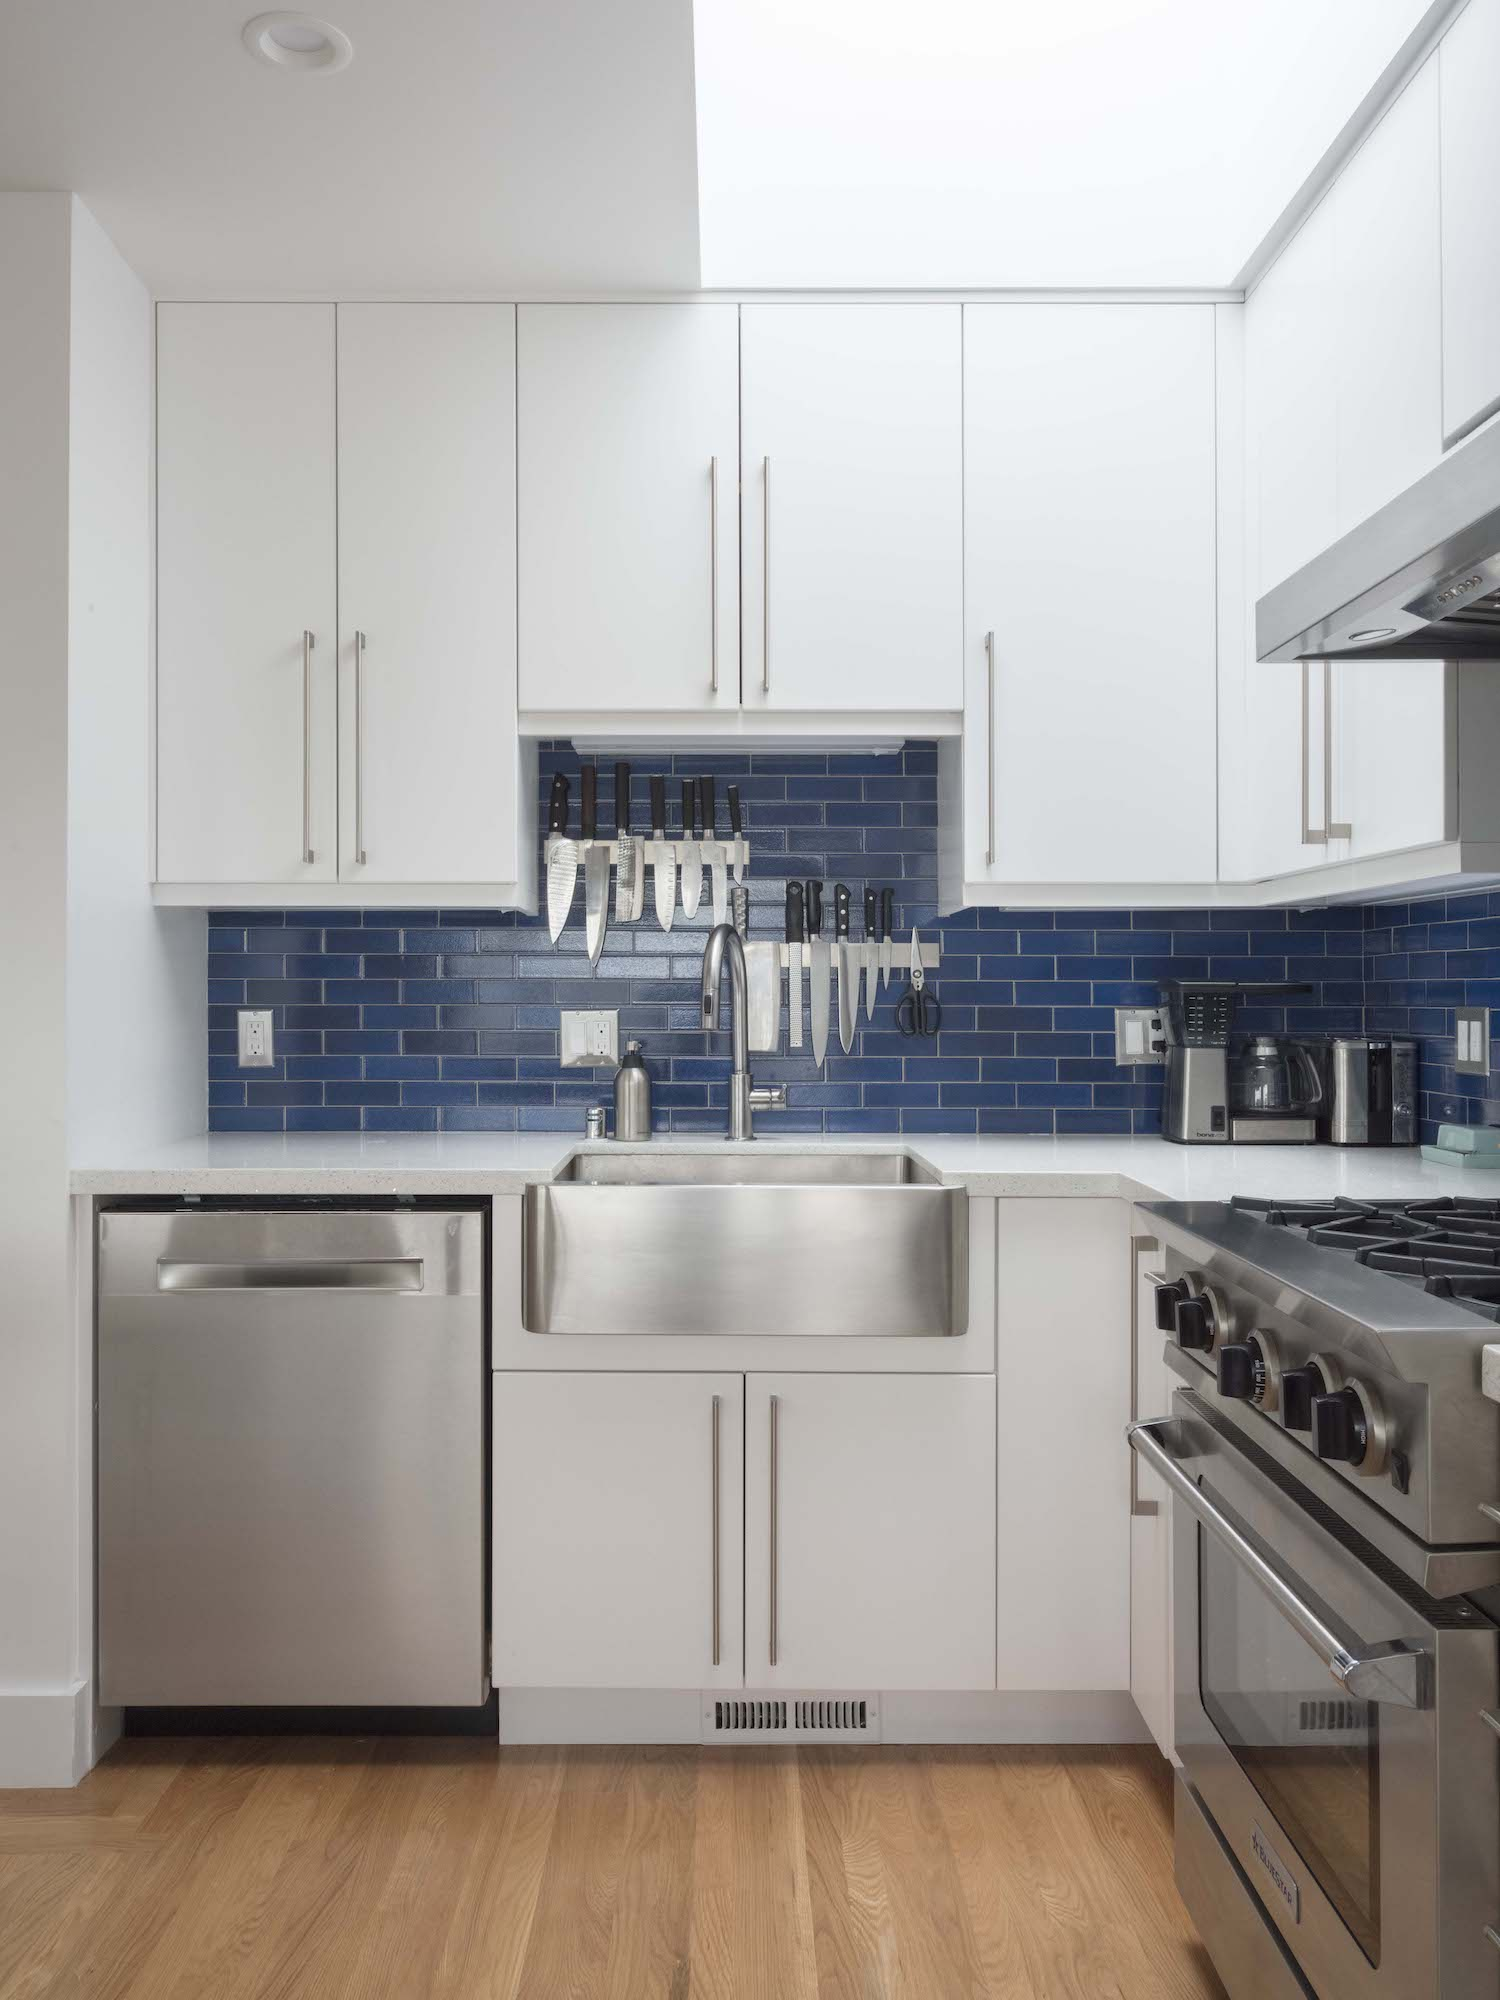 kitchen with white cabinets and blue tile backsplash and stainless steel appliances and brushed nickel hardware.jpg